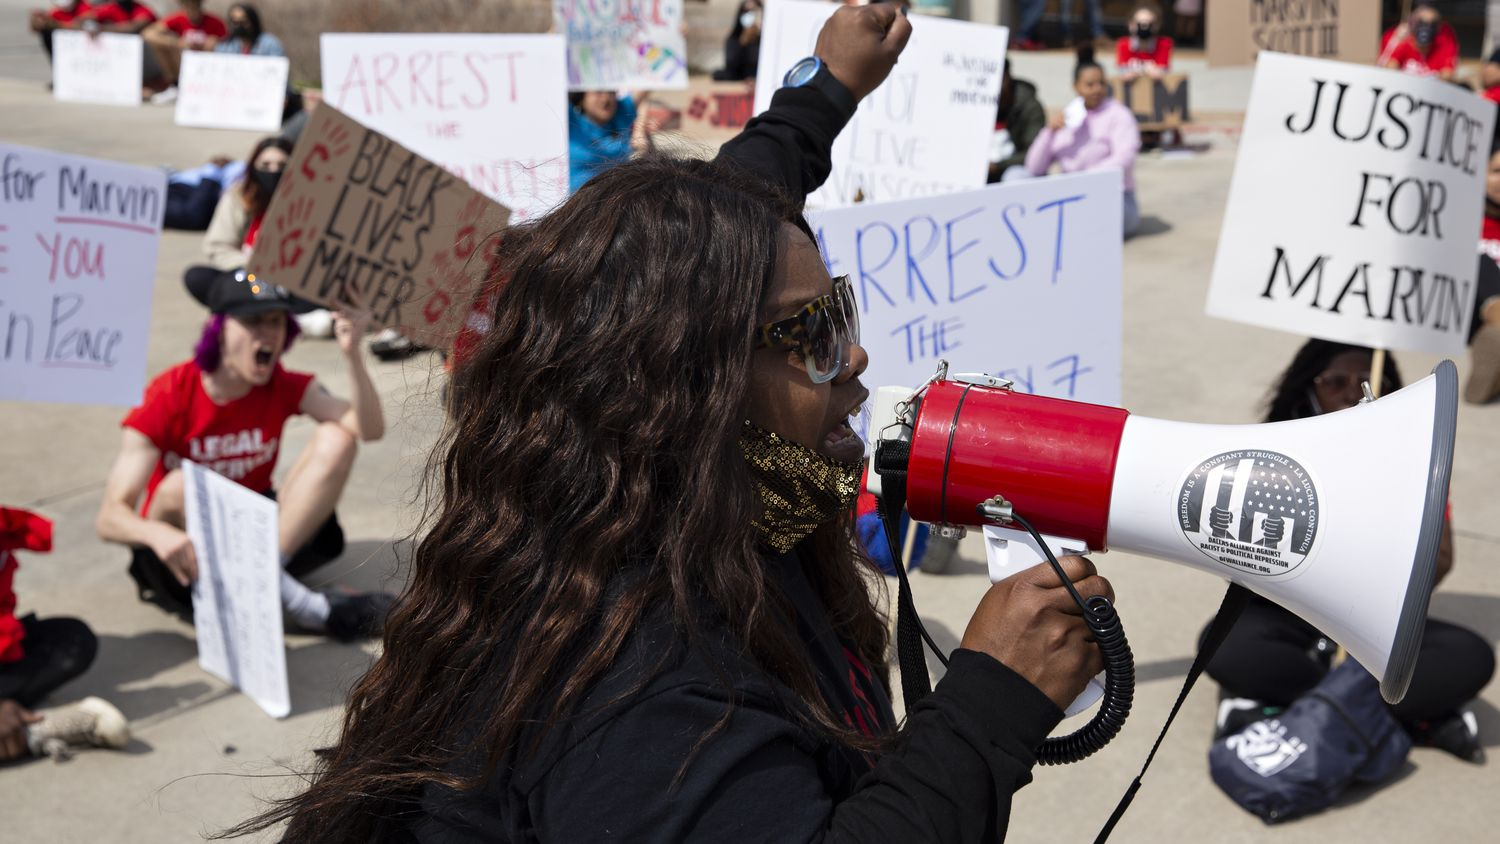 LaSandra Scott leads a chant in the Allen Outlets on Sunday, March 21, 2021 demanding justice for her son Marvin Scott III, who died a week prior while in custody at the Collin County Jail on March 14, 2021. Marvin Scott III was arrested at the Allen Outlets on a possession of marijuana charge. Demonstrators called for the arrest of the seven Collin County Jail employees who were placed on leave after Marvin's death.